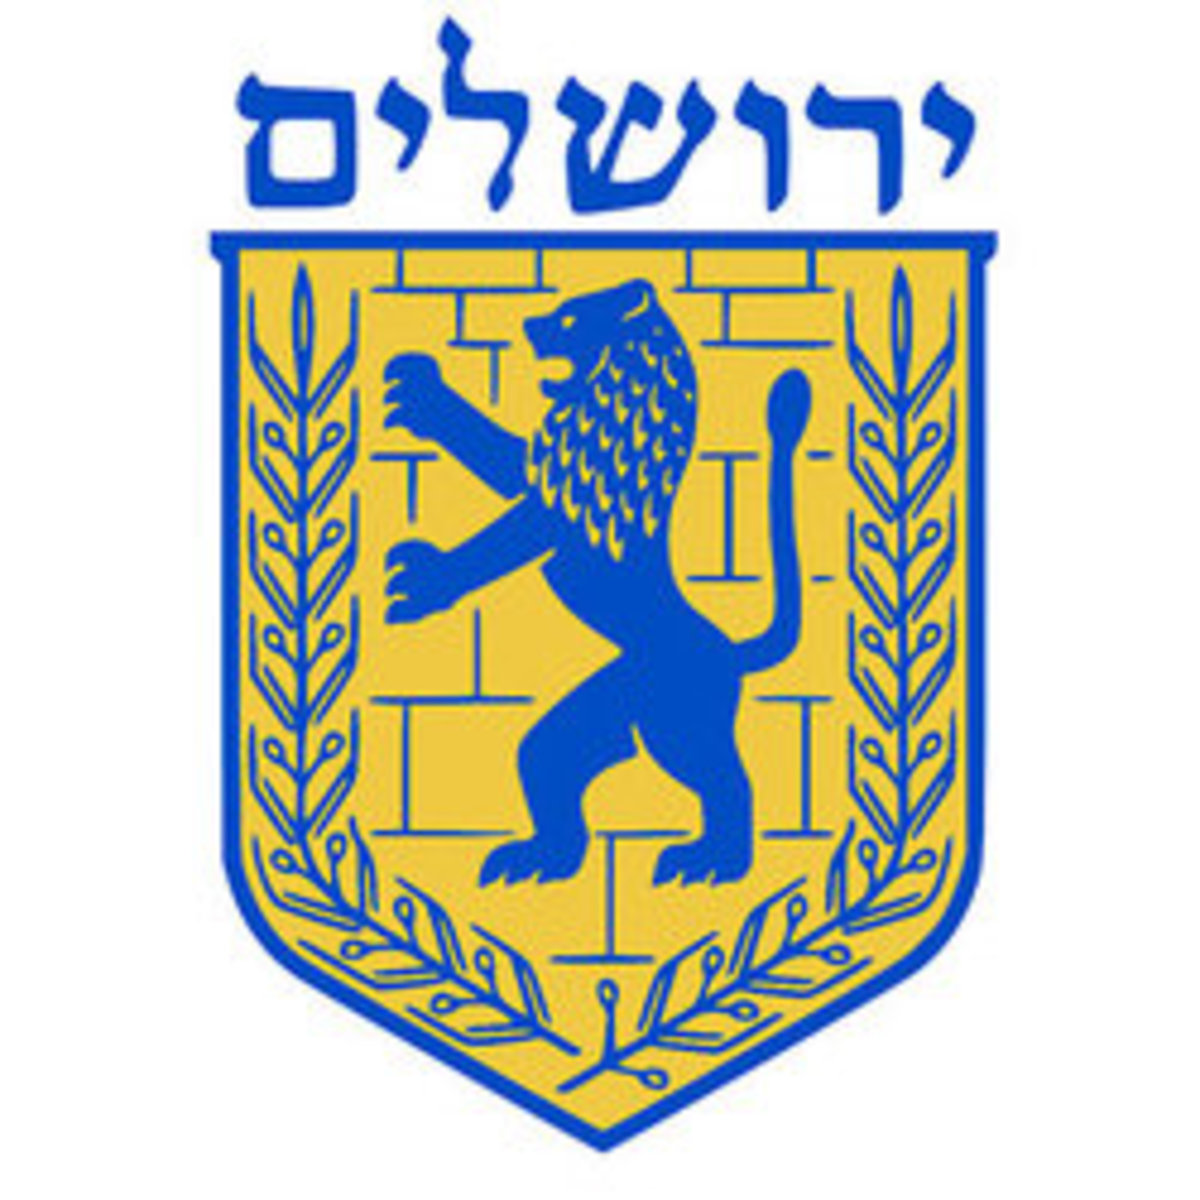 City of Jerusalem Logo displays the Lion of Judah, the Western Wall of the Temple Mount and olive branches.